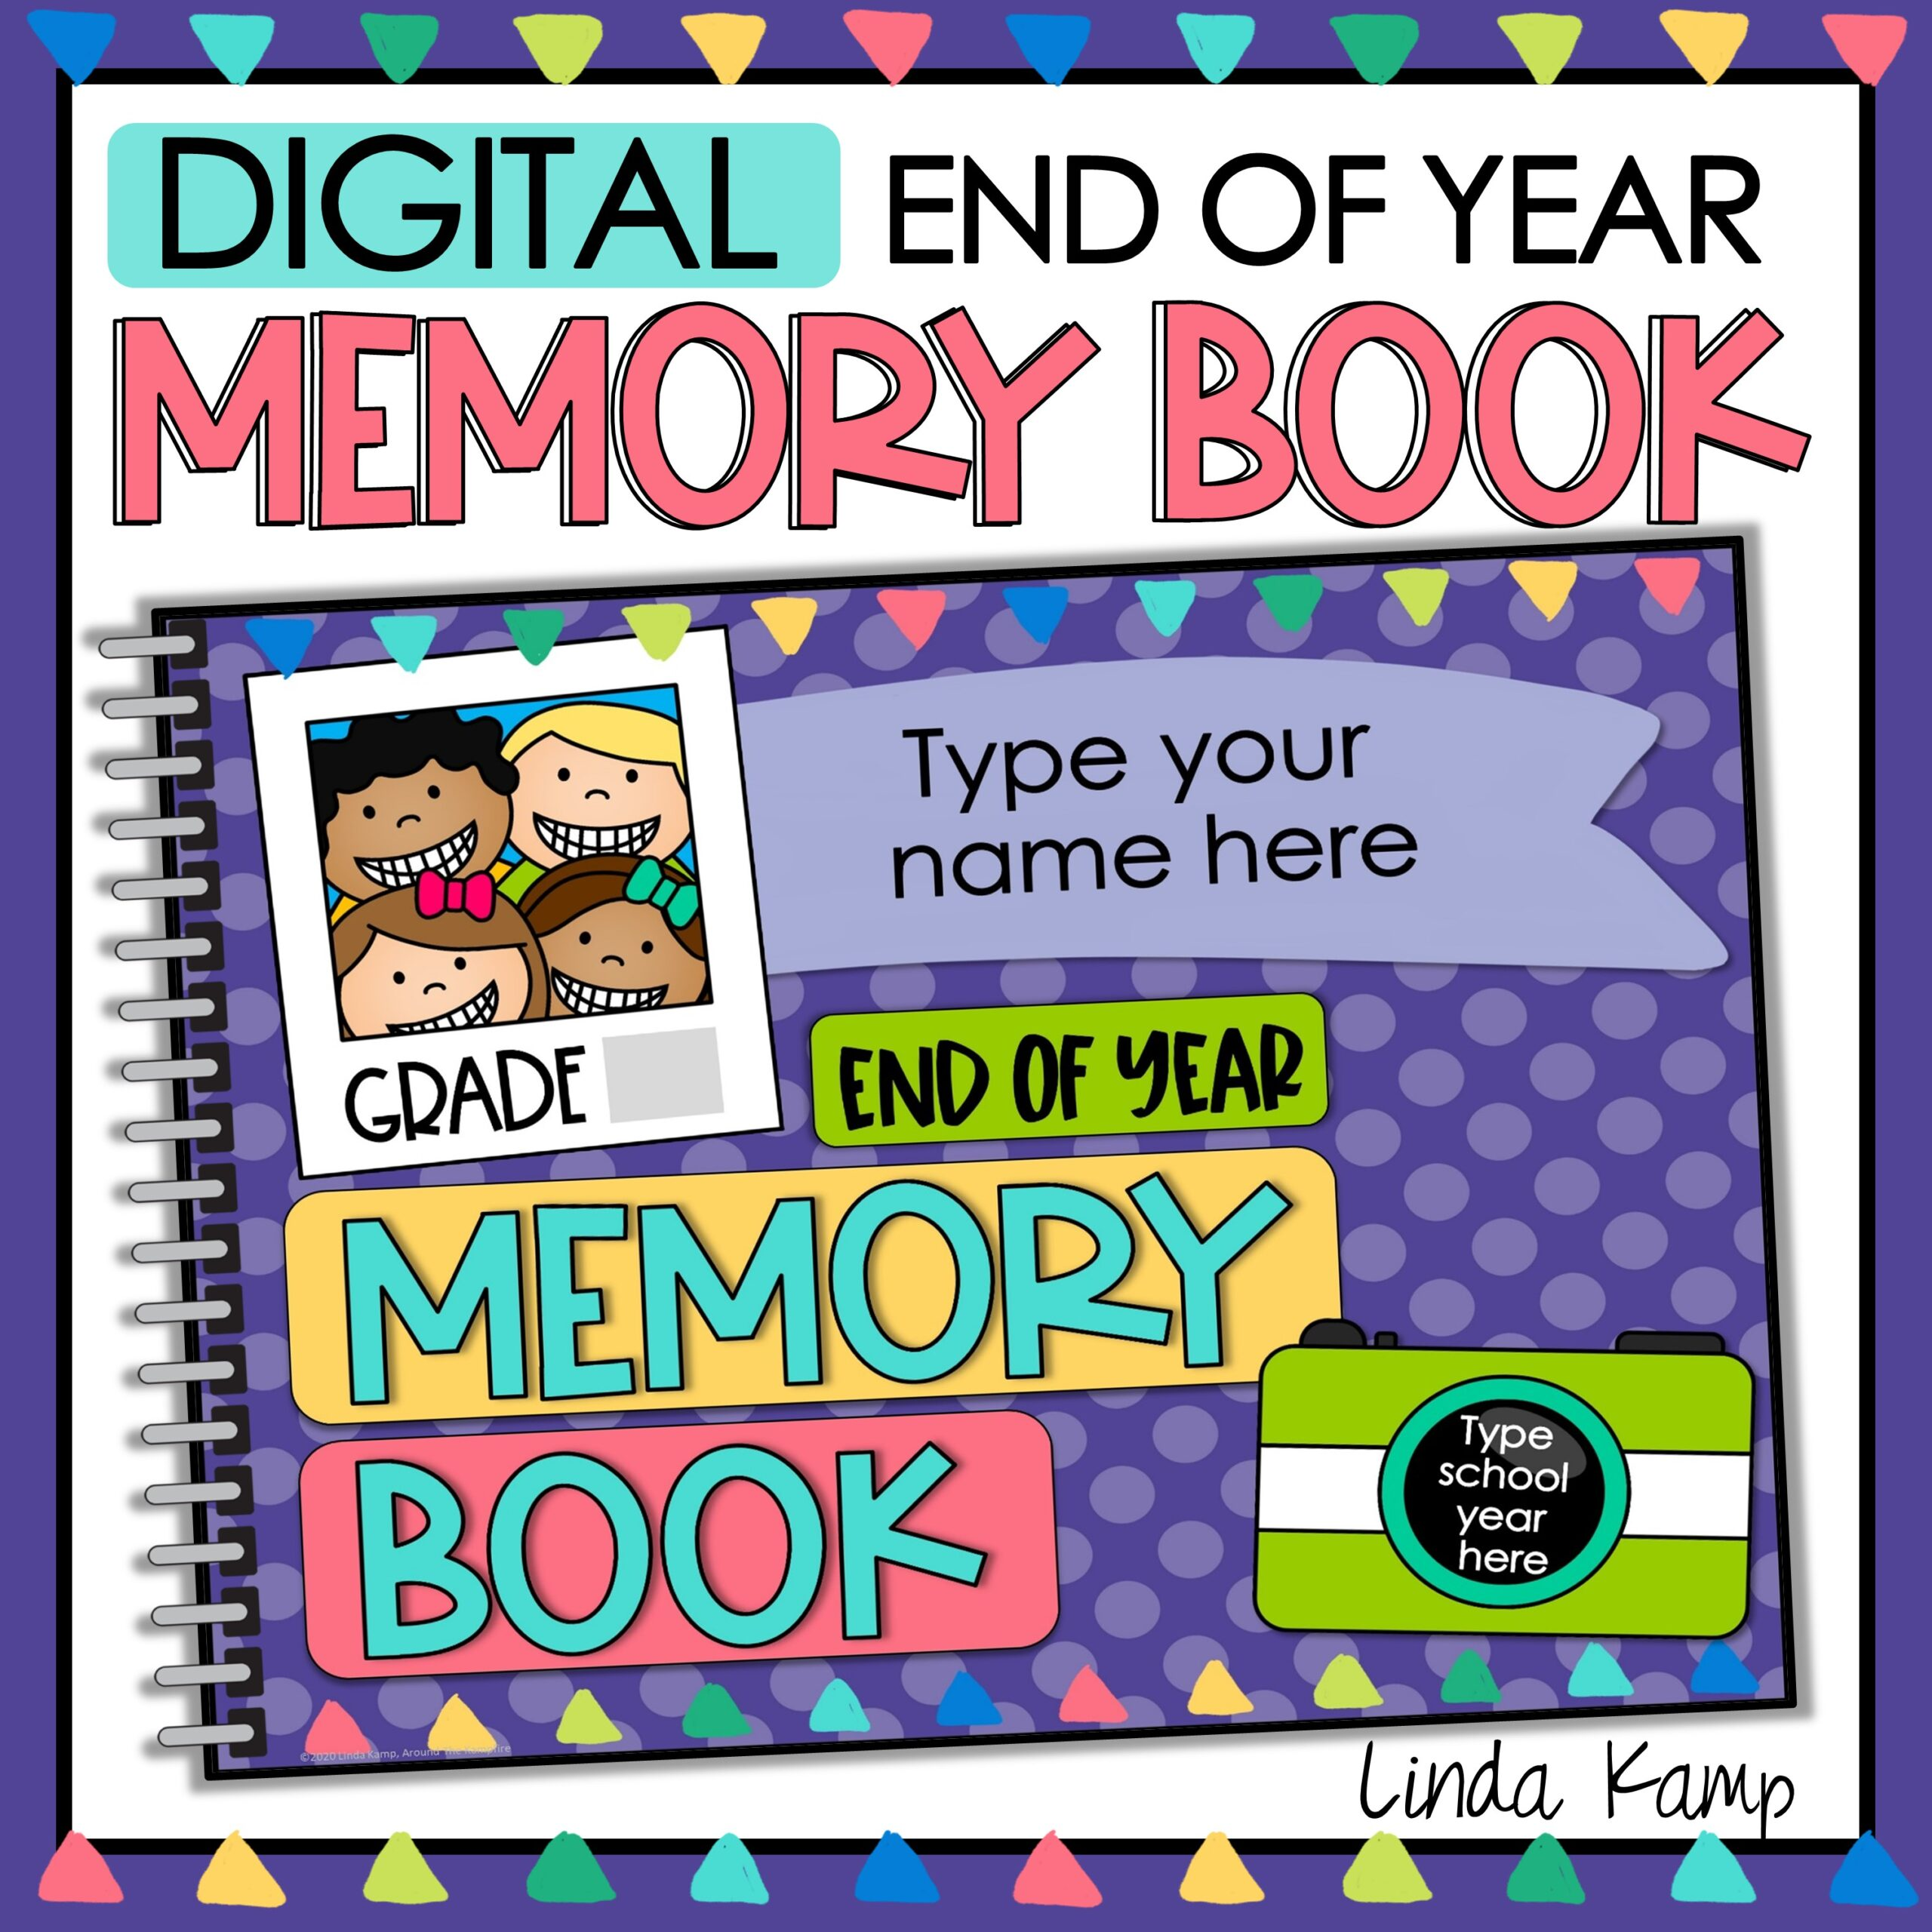 digital memory book cover